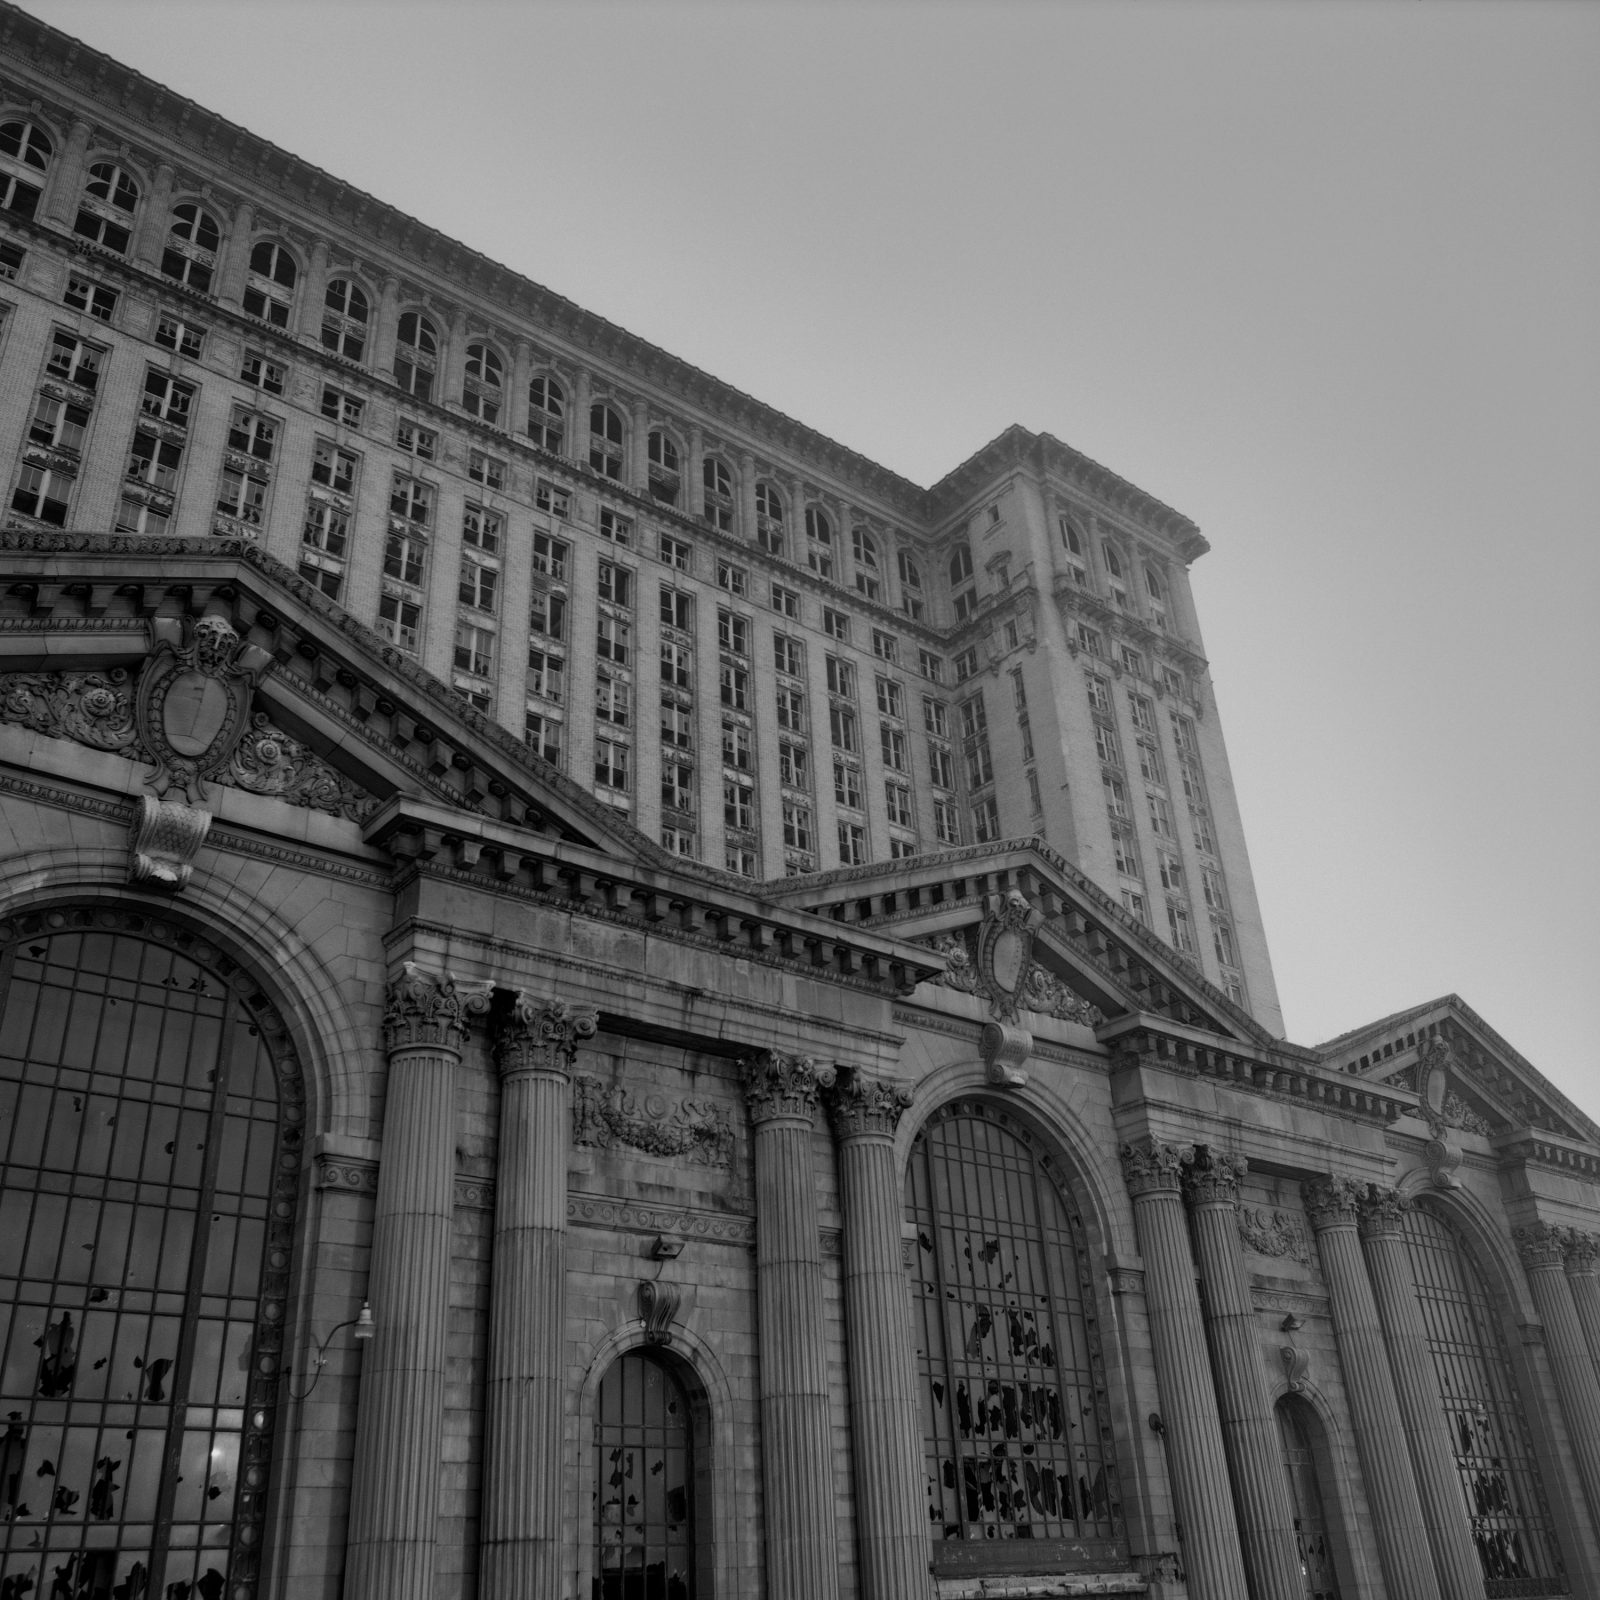 Michigan Central station at night. Detroit, Michigan.